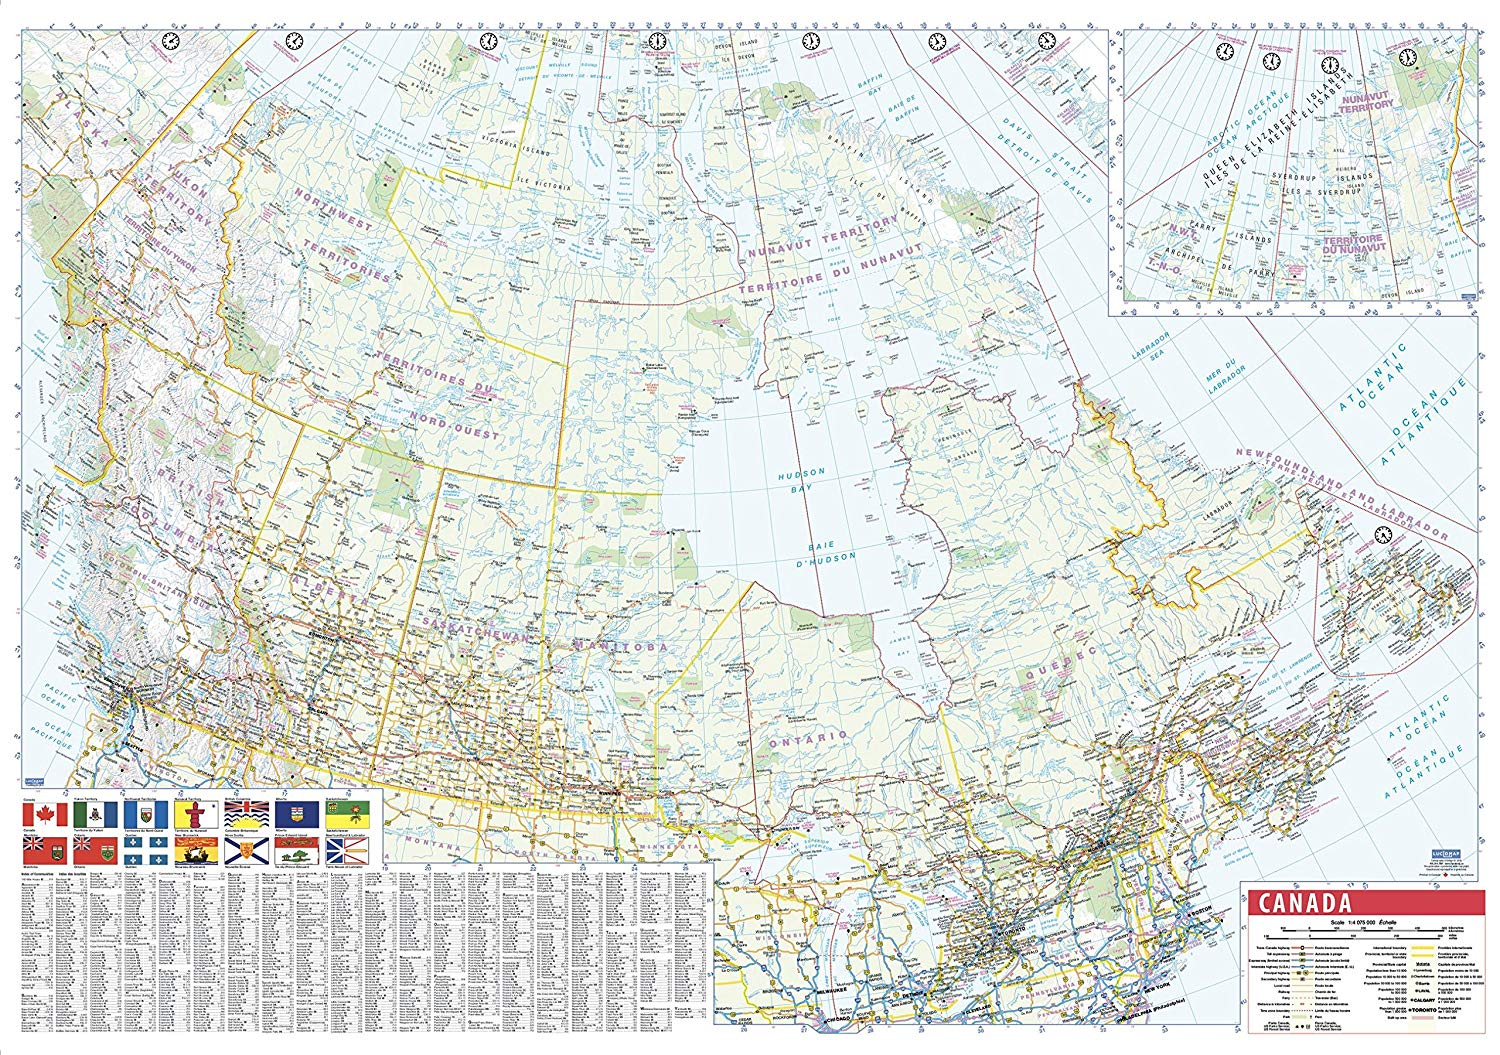 Brampton Canada Map.Cheap Brampton Canada Map Find Brampton Canada Map Deals On Line At